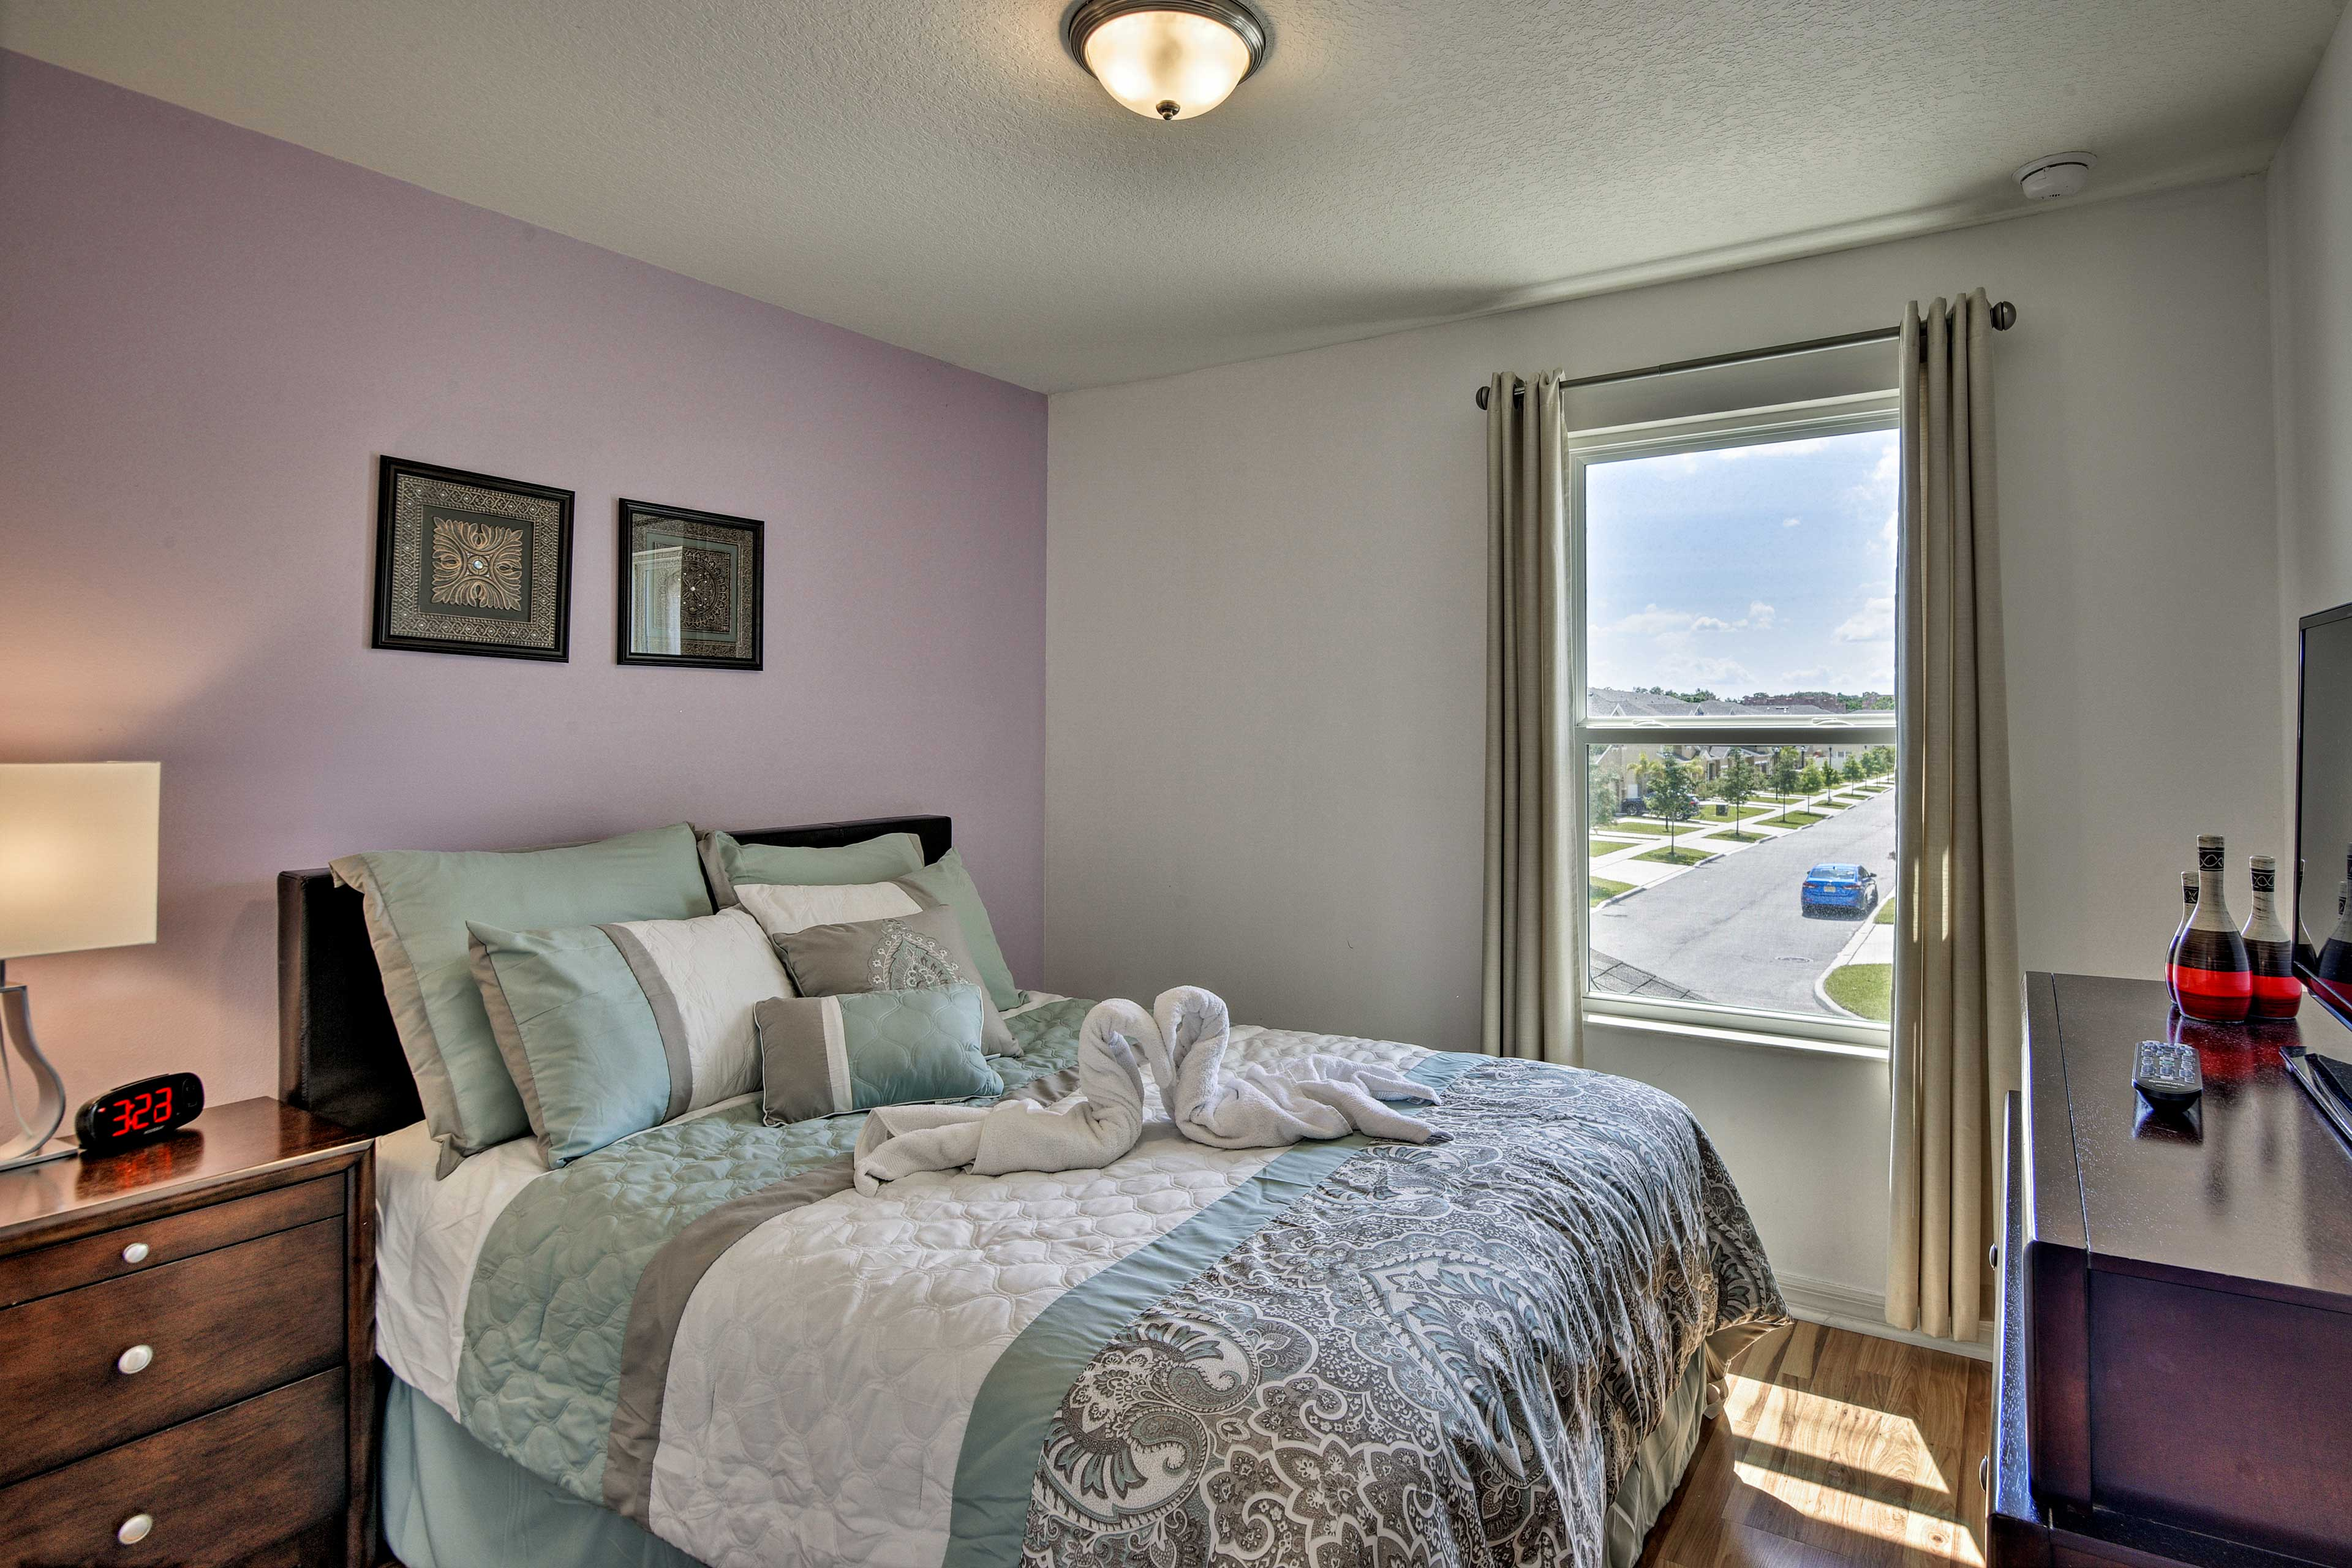 You'll find a queen bed in this bedroom.